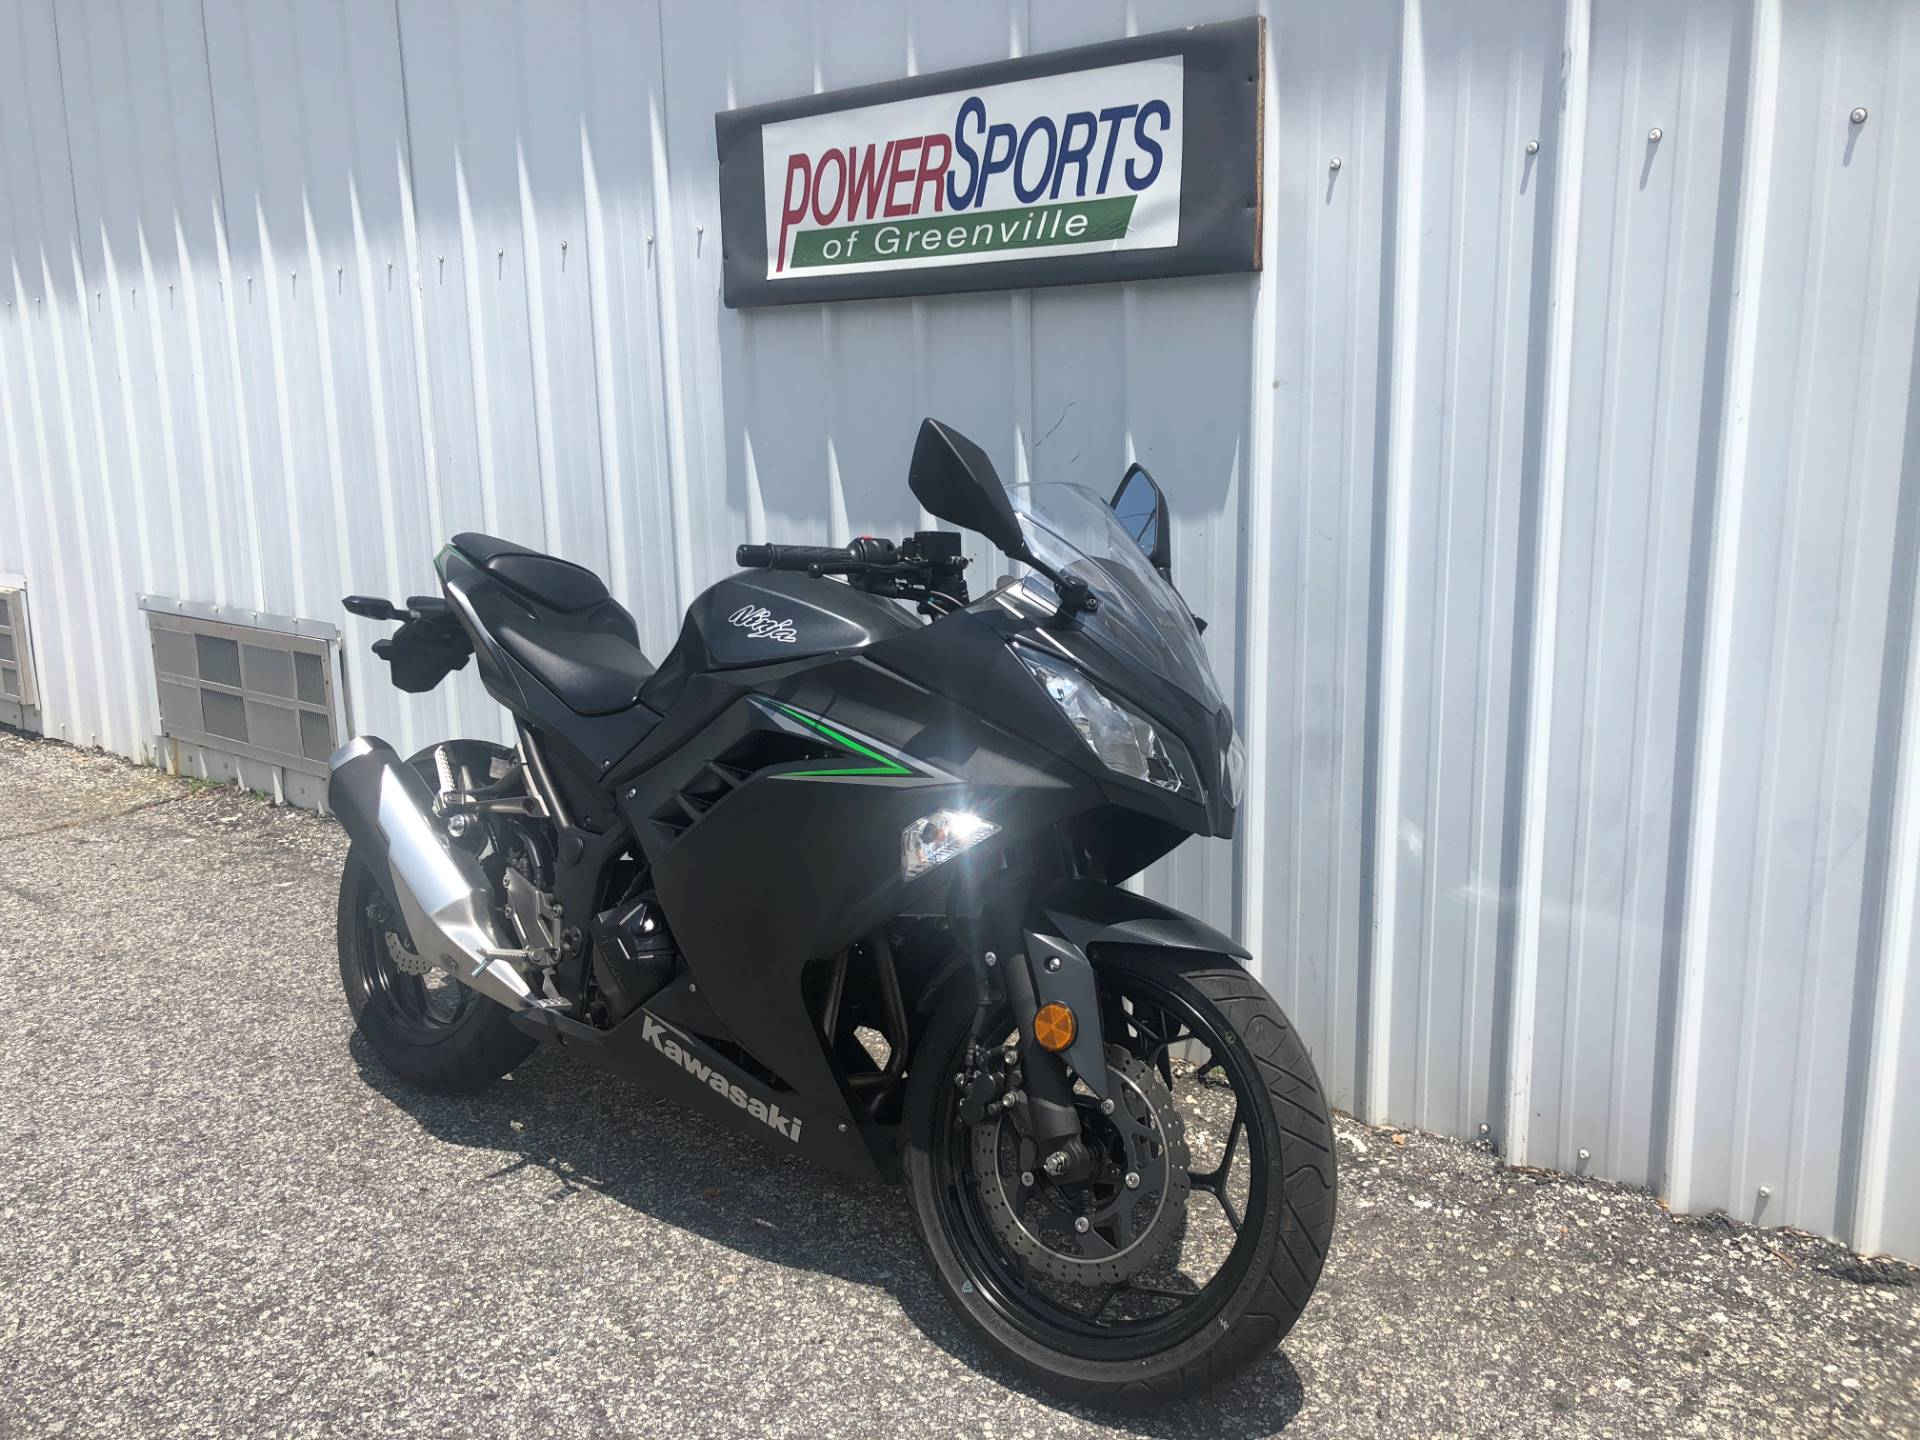 2016 Kawasaki Ninja 300 in Greenville, South Carolina